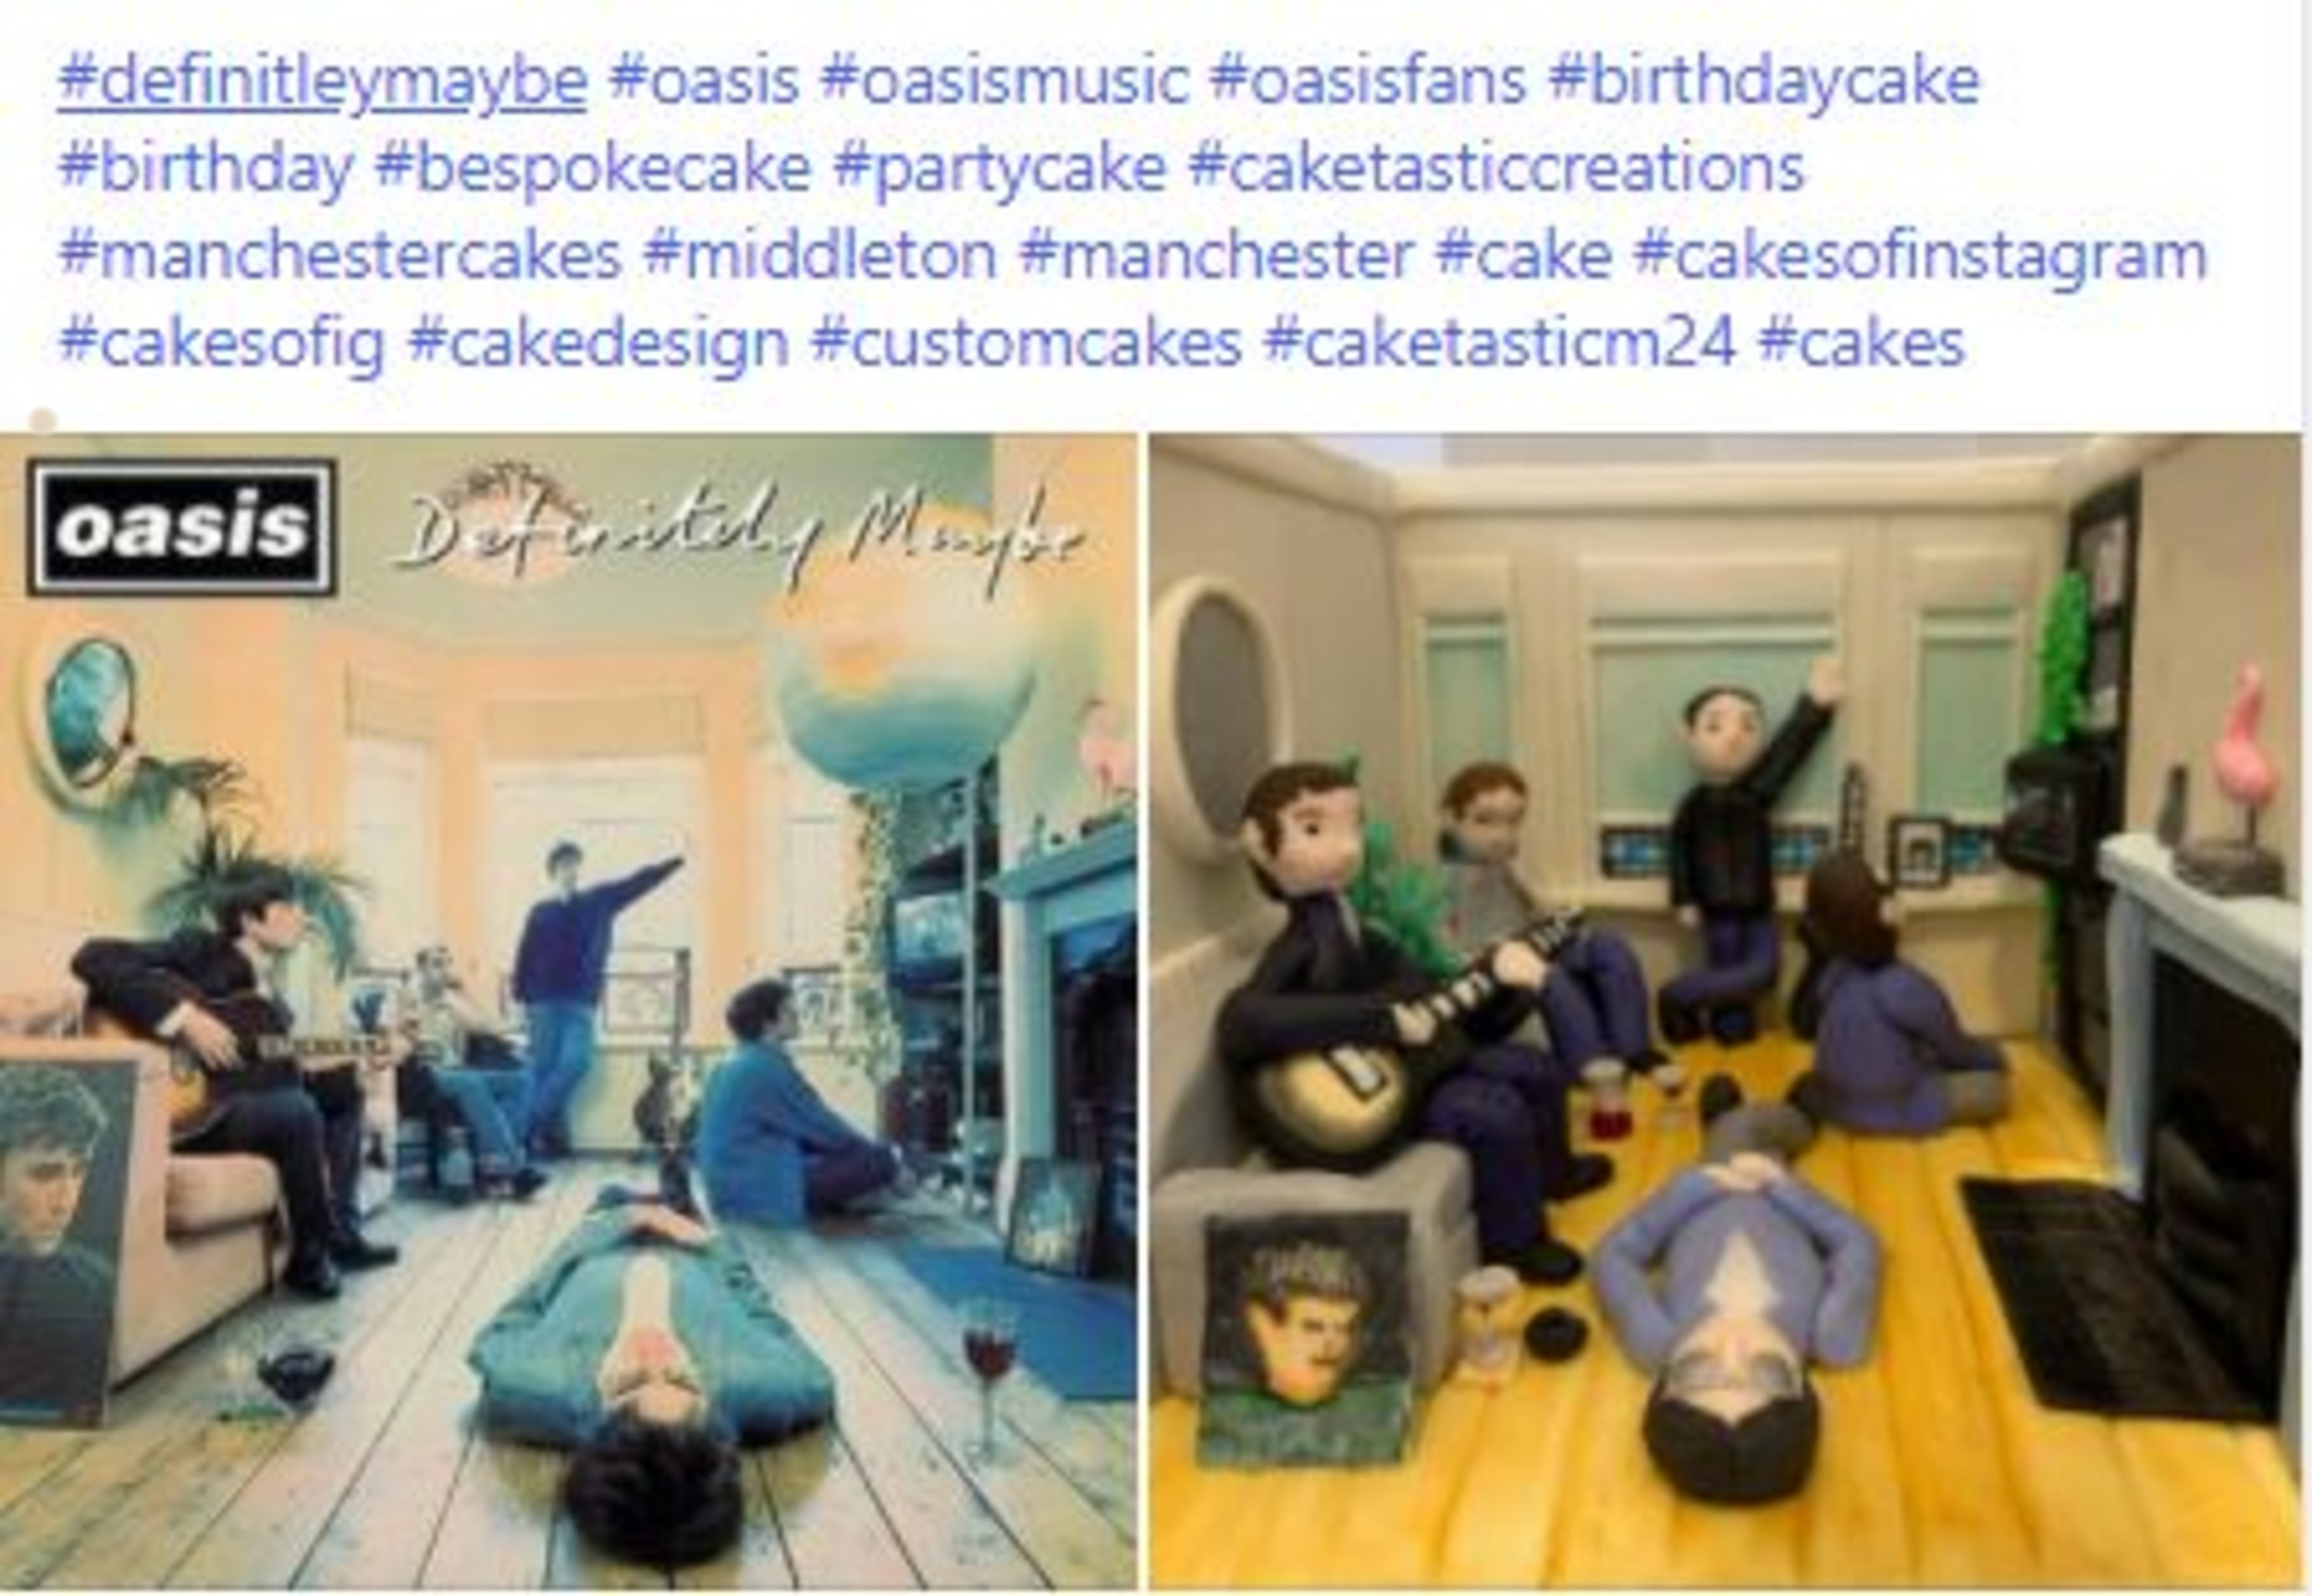 Photo comparison of the album and cake- Food and Drink News